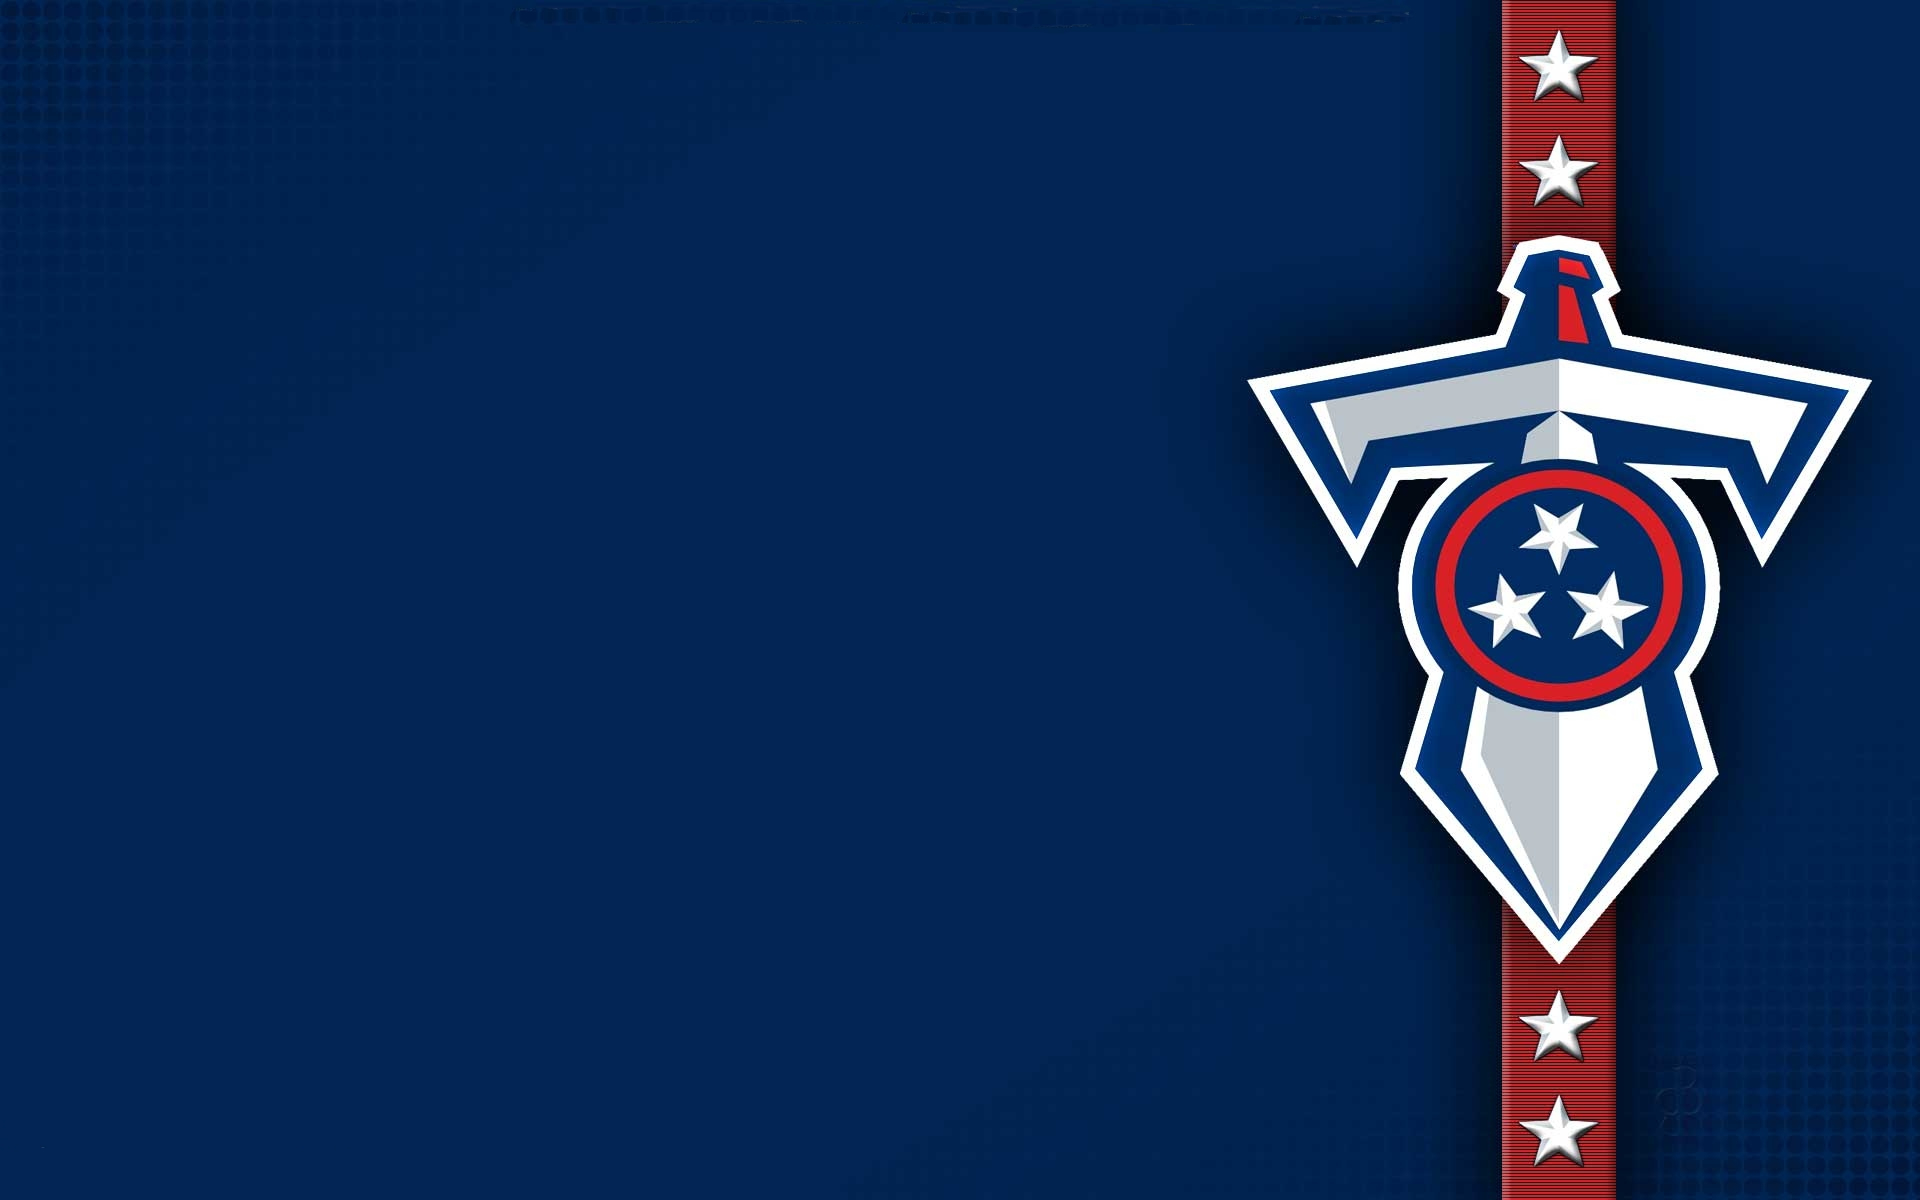 Tennessee Titans Wide Wallpaper1920x1200 - Tennessee Titans Vector PNG